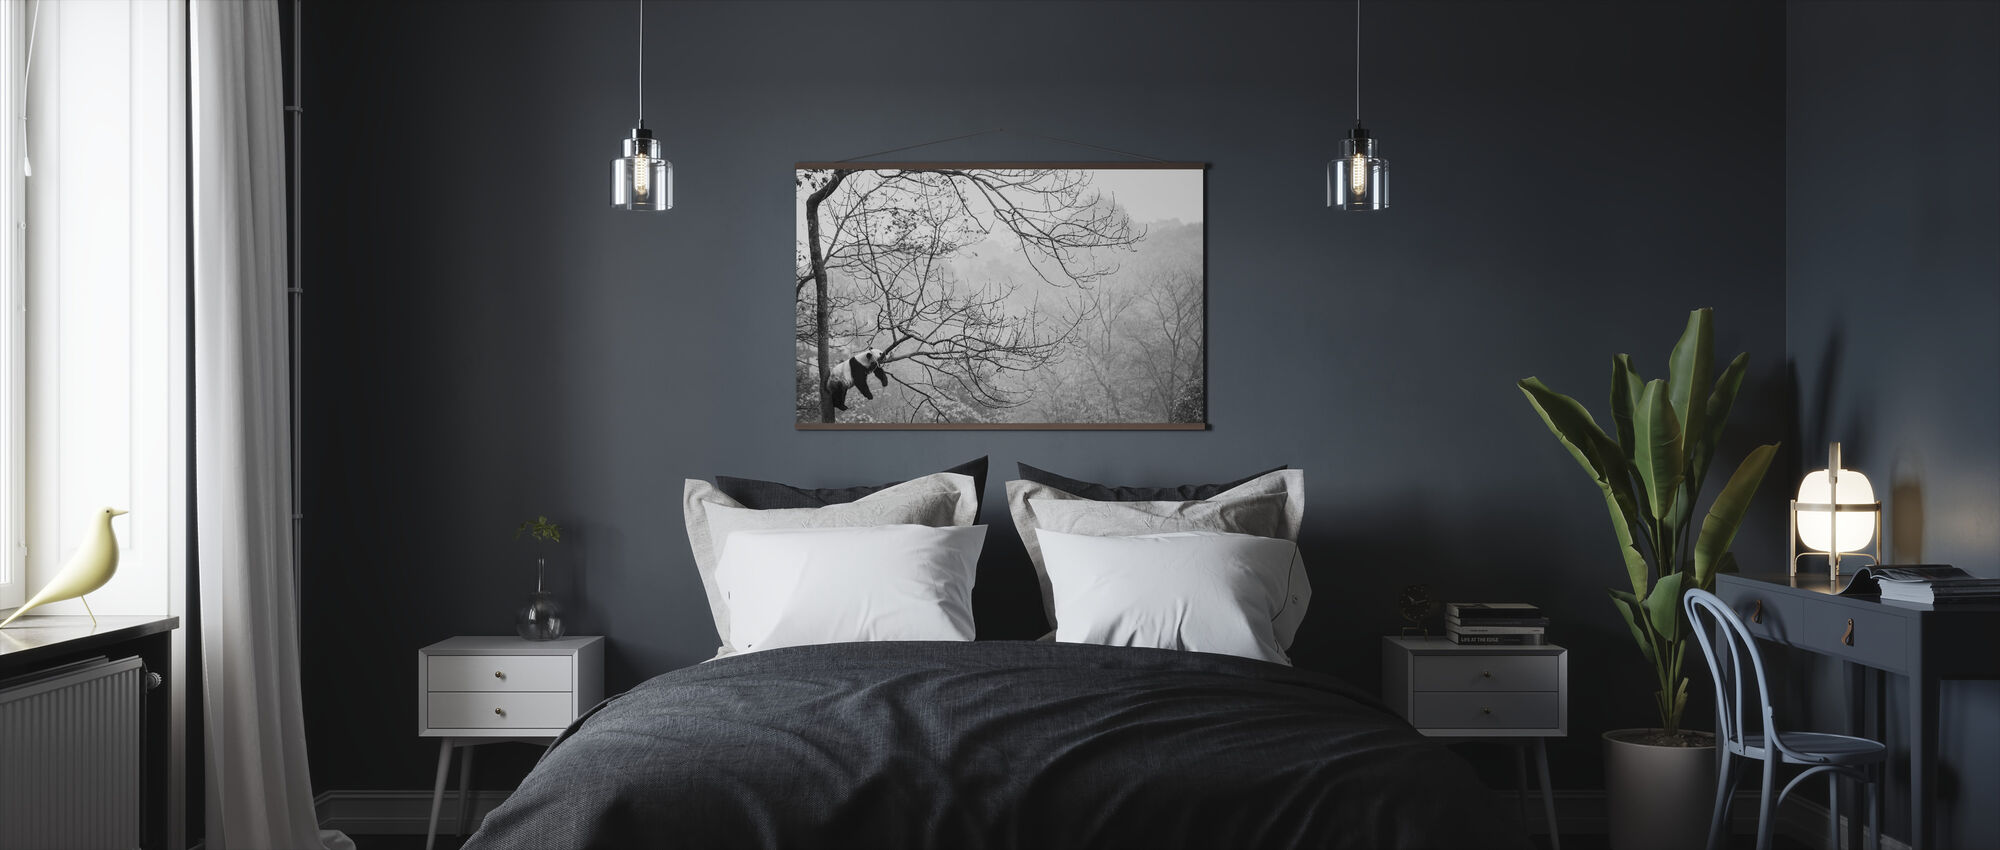 Relax - Poster - Bedroom